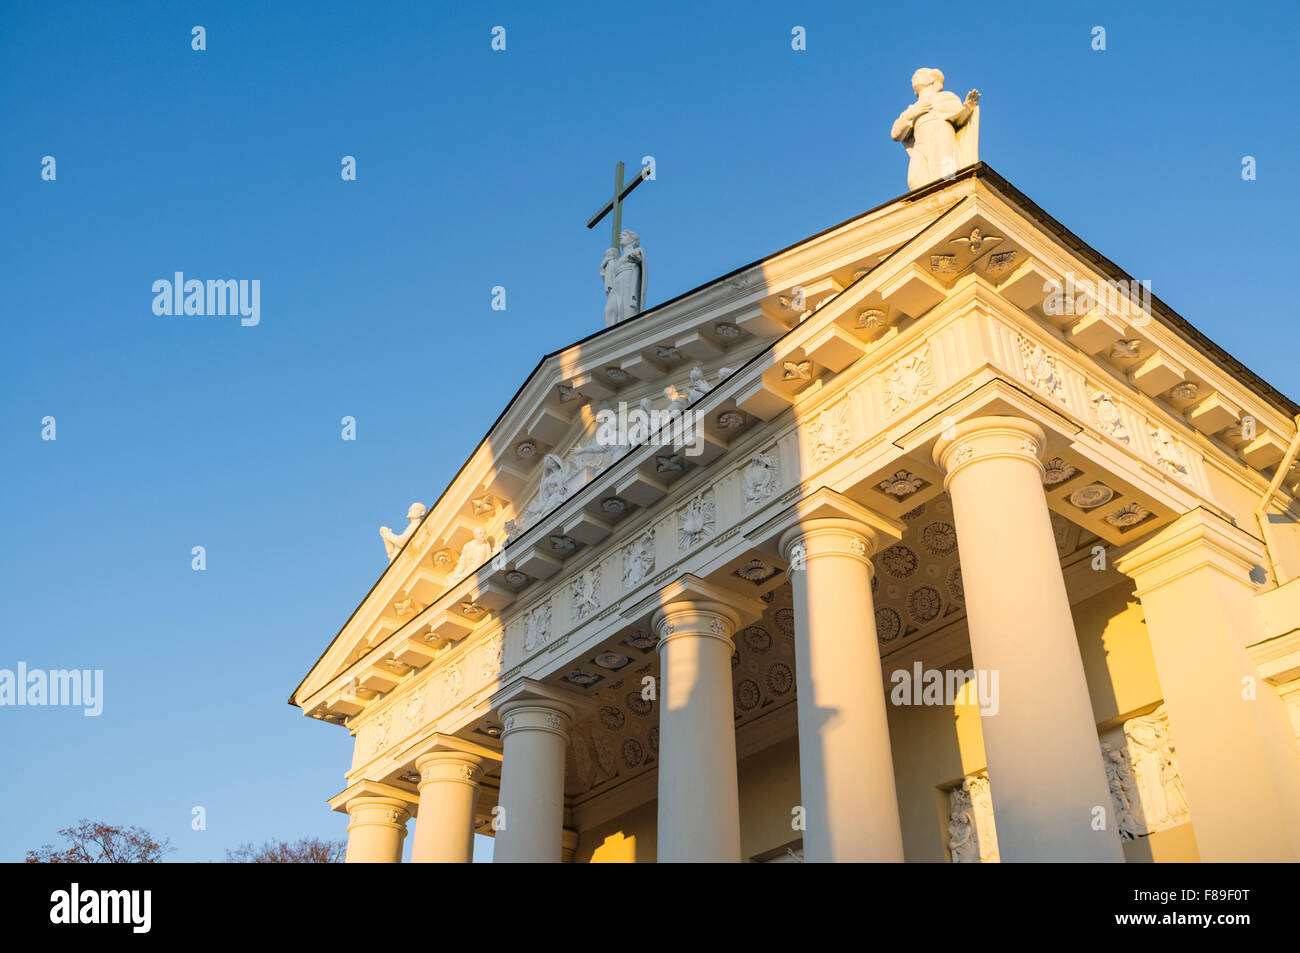 Vilnius Cathedral front in warm light. Vilnius, Lithuania, Europe - Stock Image